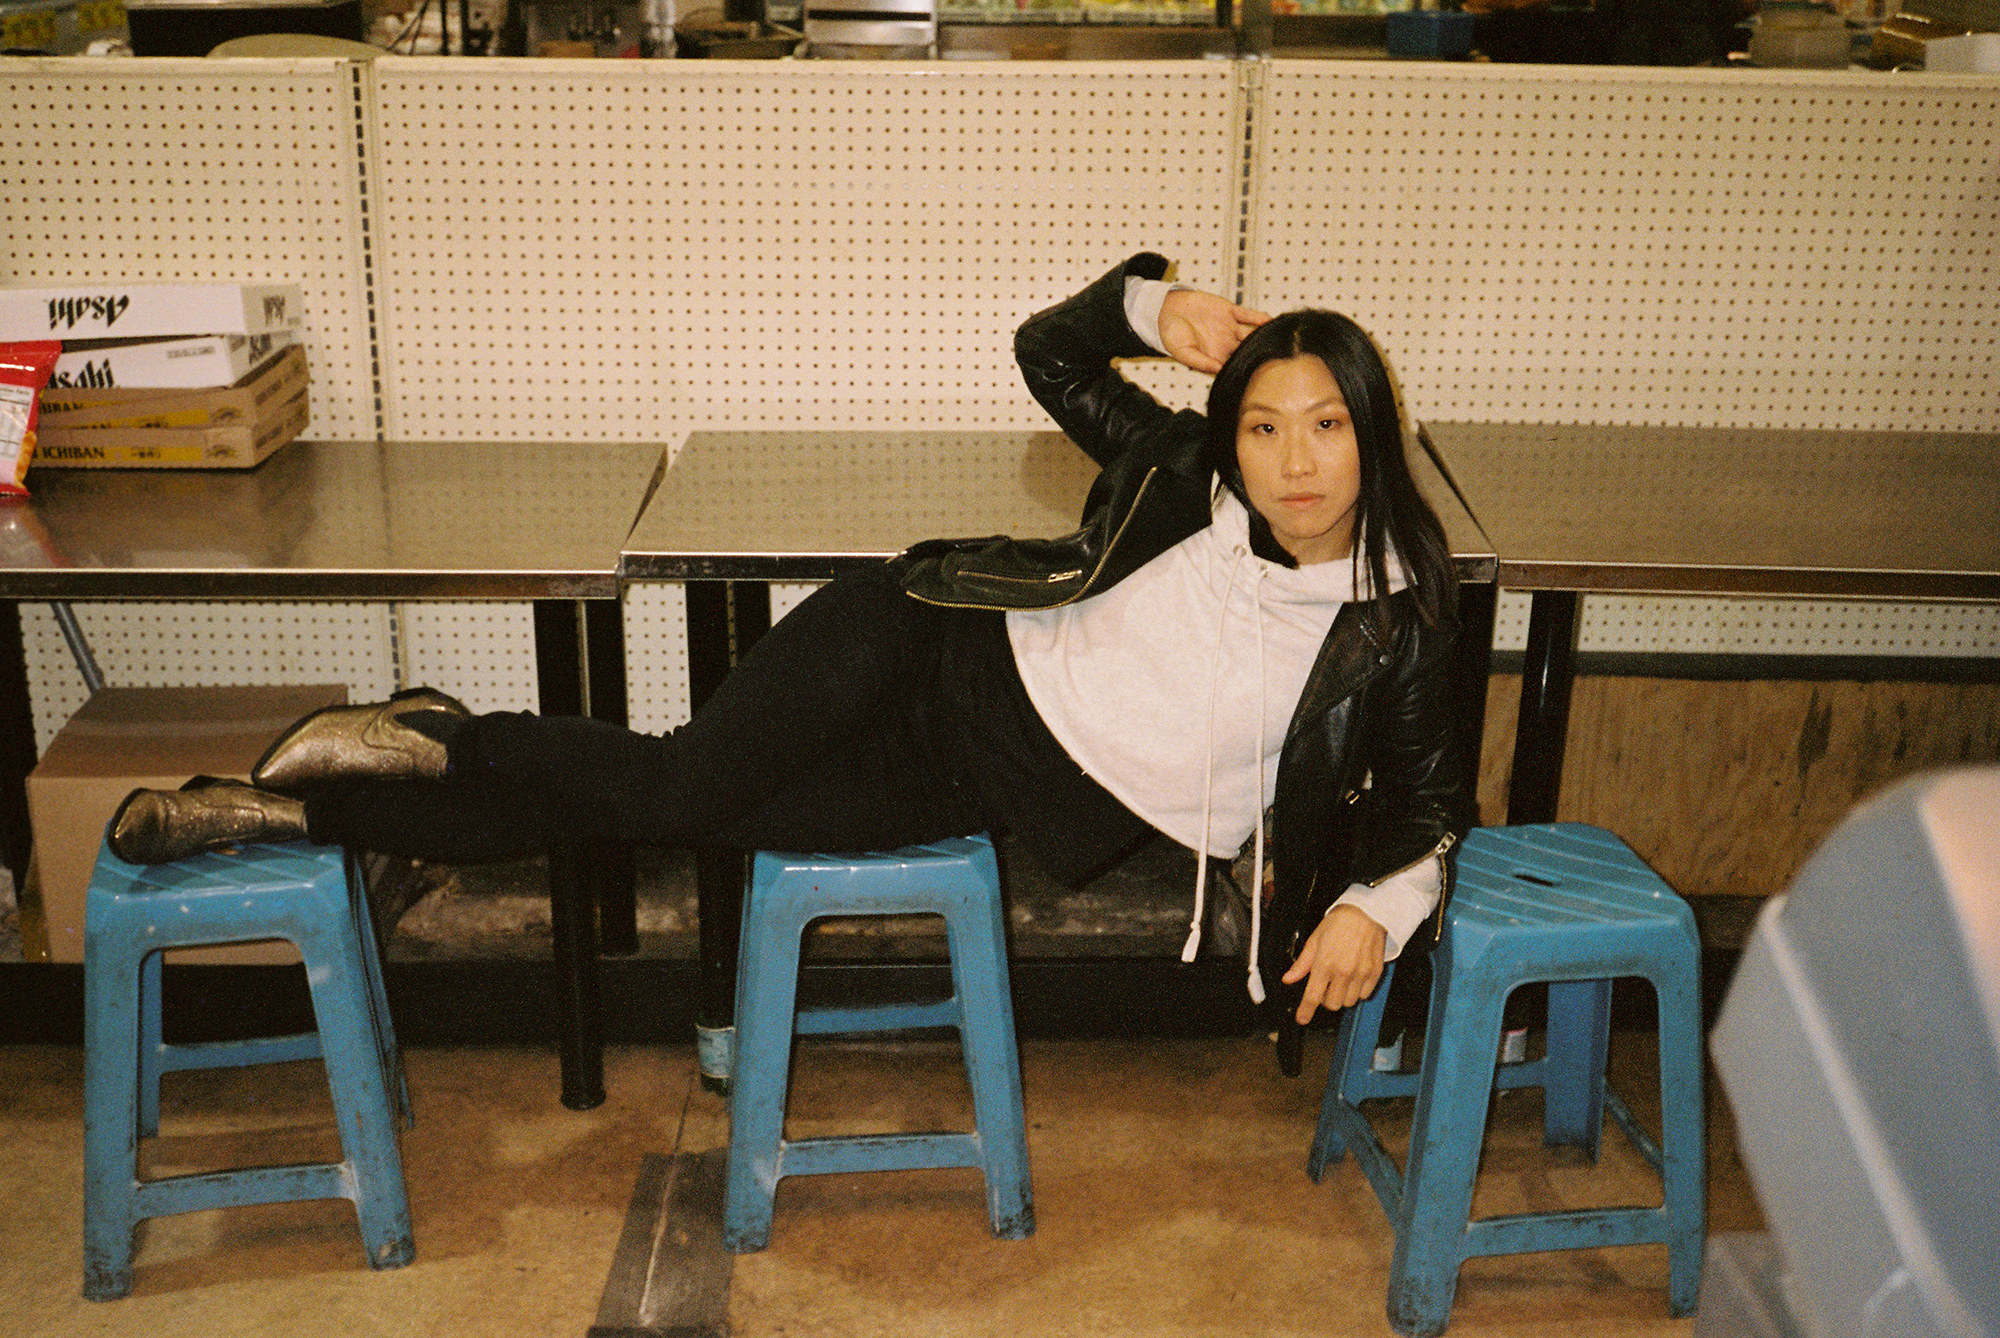 A young woman lies across three stools  and looks at the camera